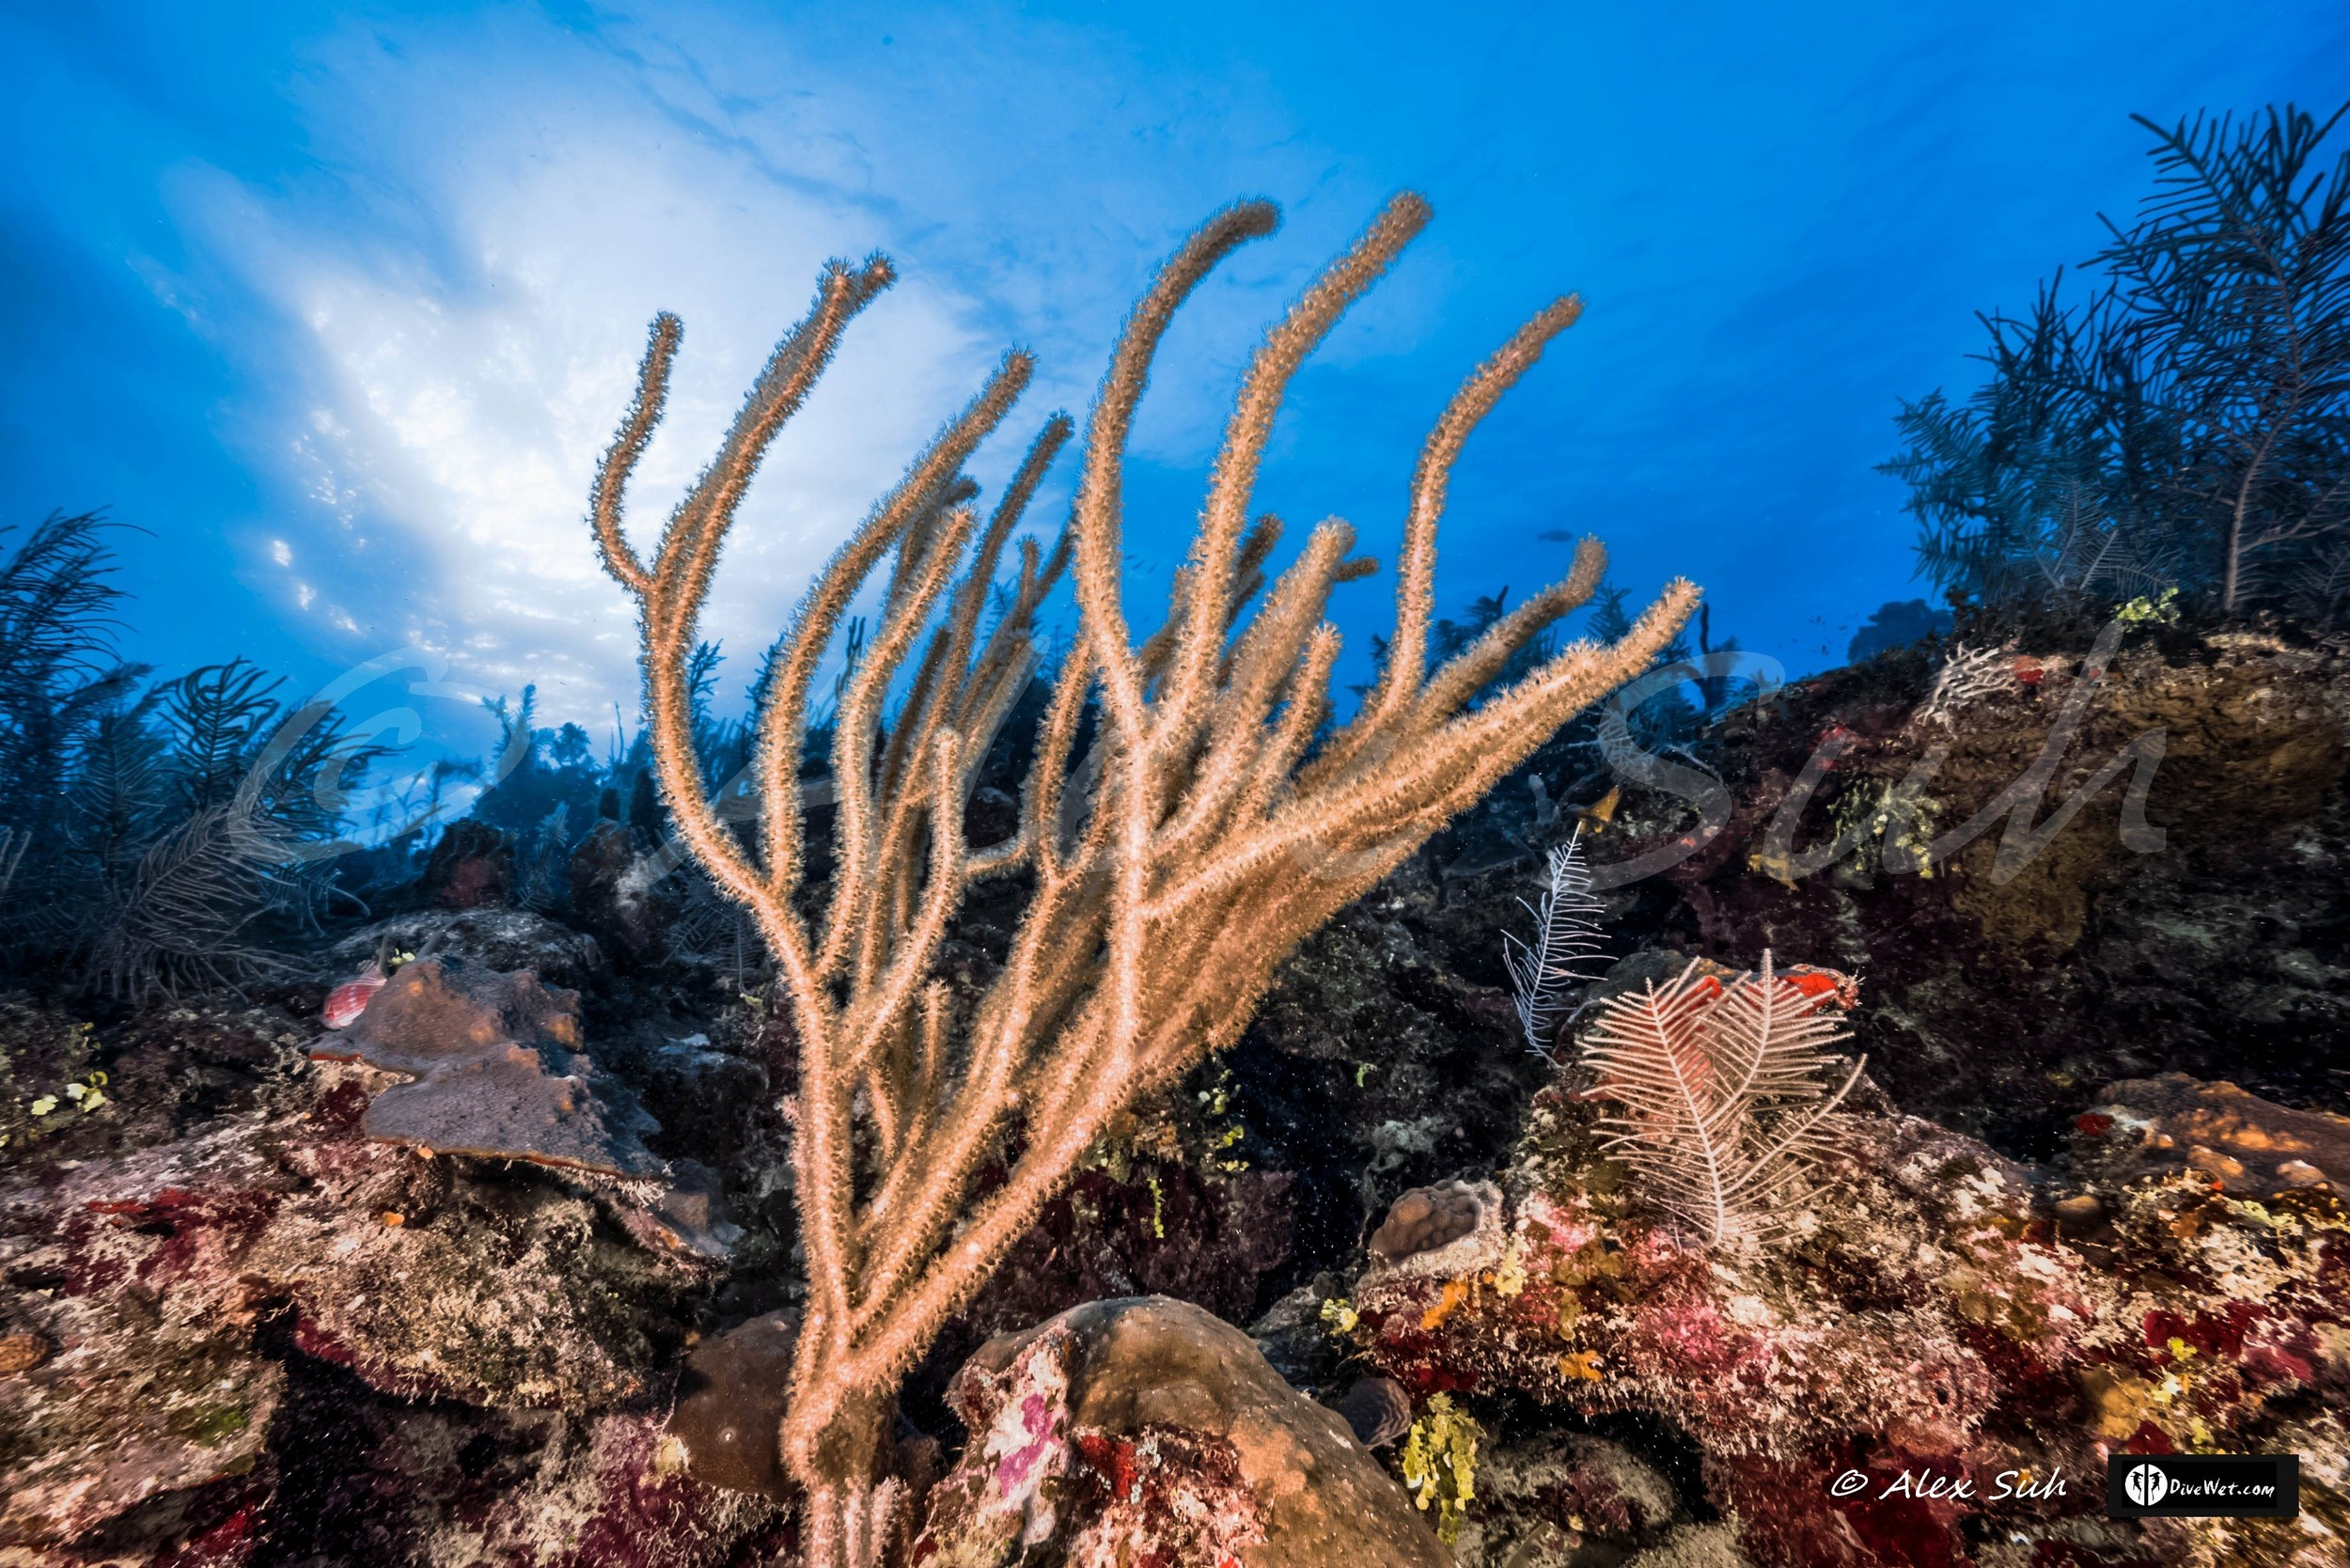 Soft Coral Branch Against Sun Rays on Reef